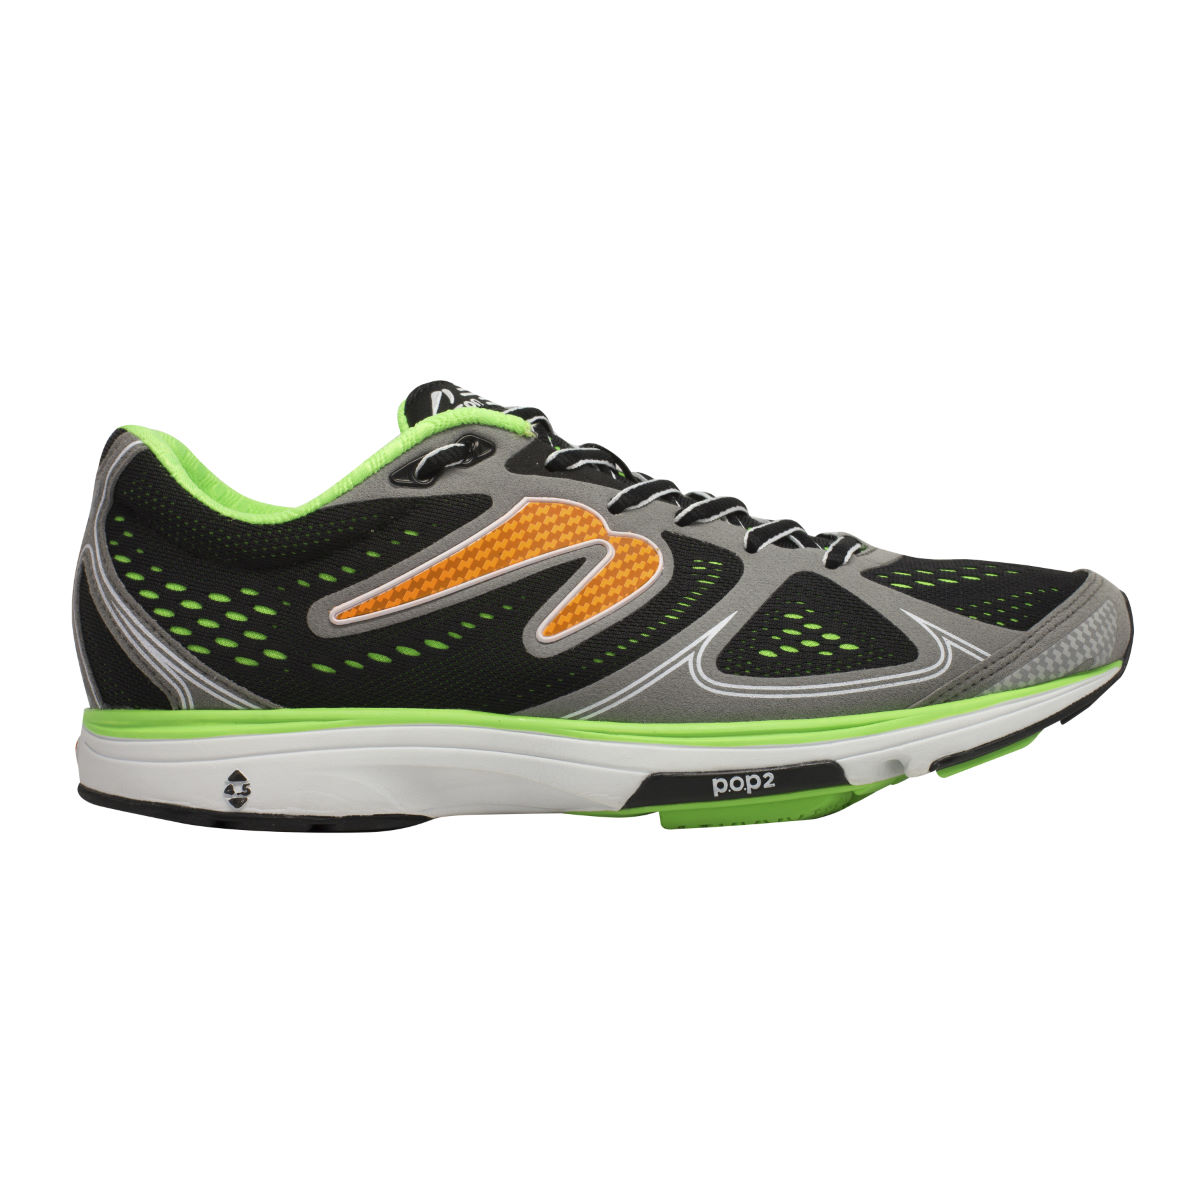 Chaussures Newton Running Fate (PE16) - UK 6 Noir/Gris Chaussures de running amorties